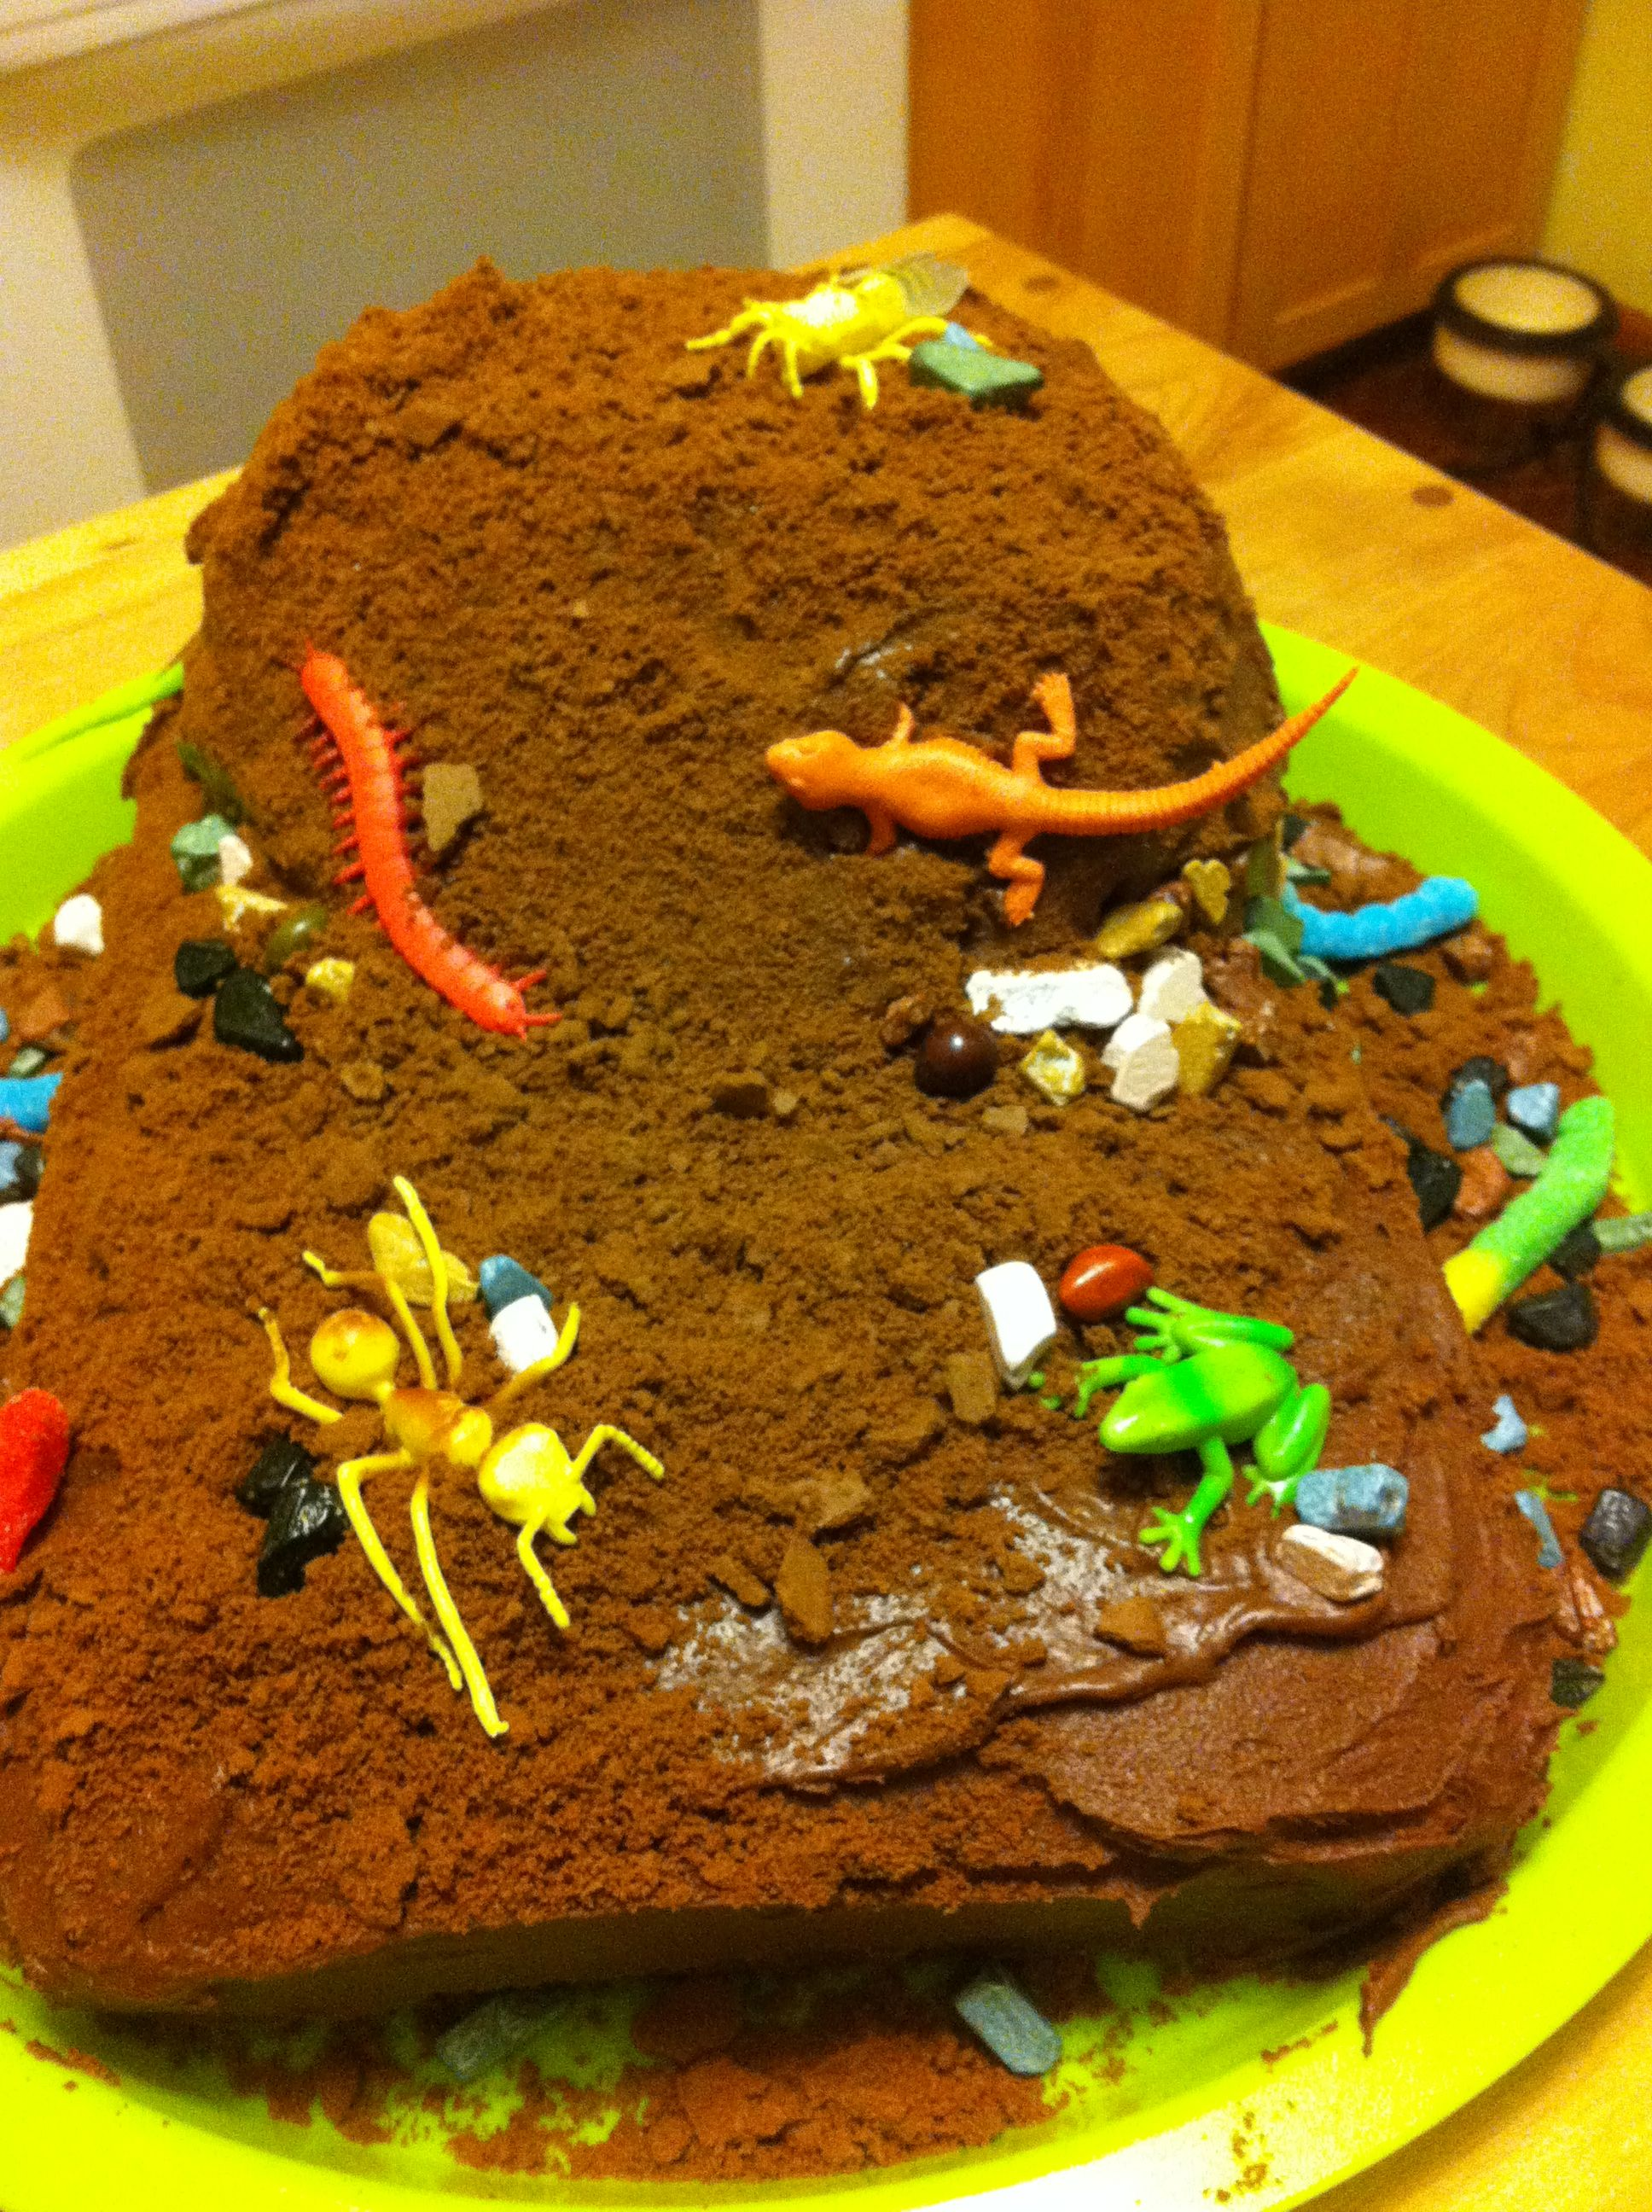 The Dirt Birthday Cake With Gummy Worms Choco Rocks And Plastic